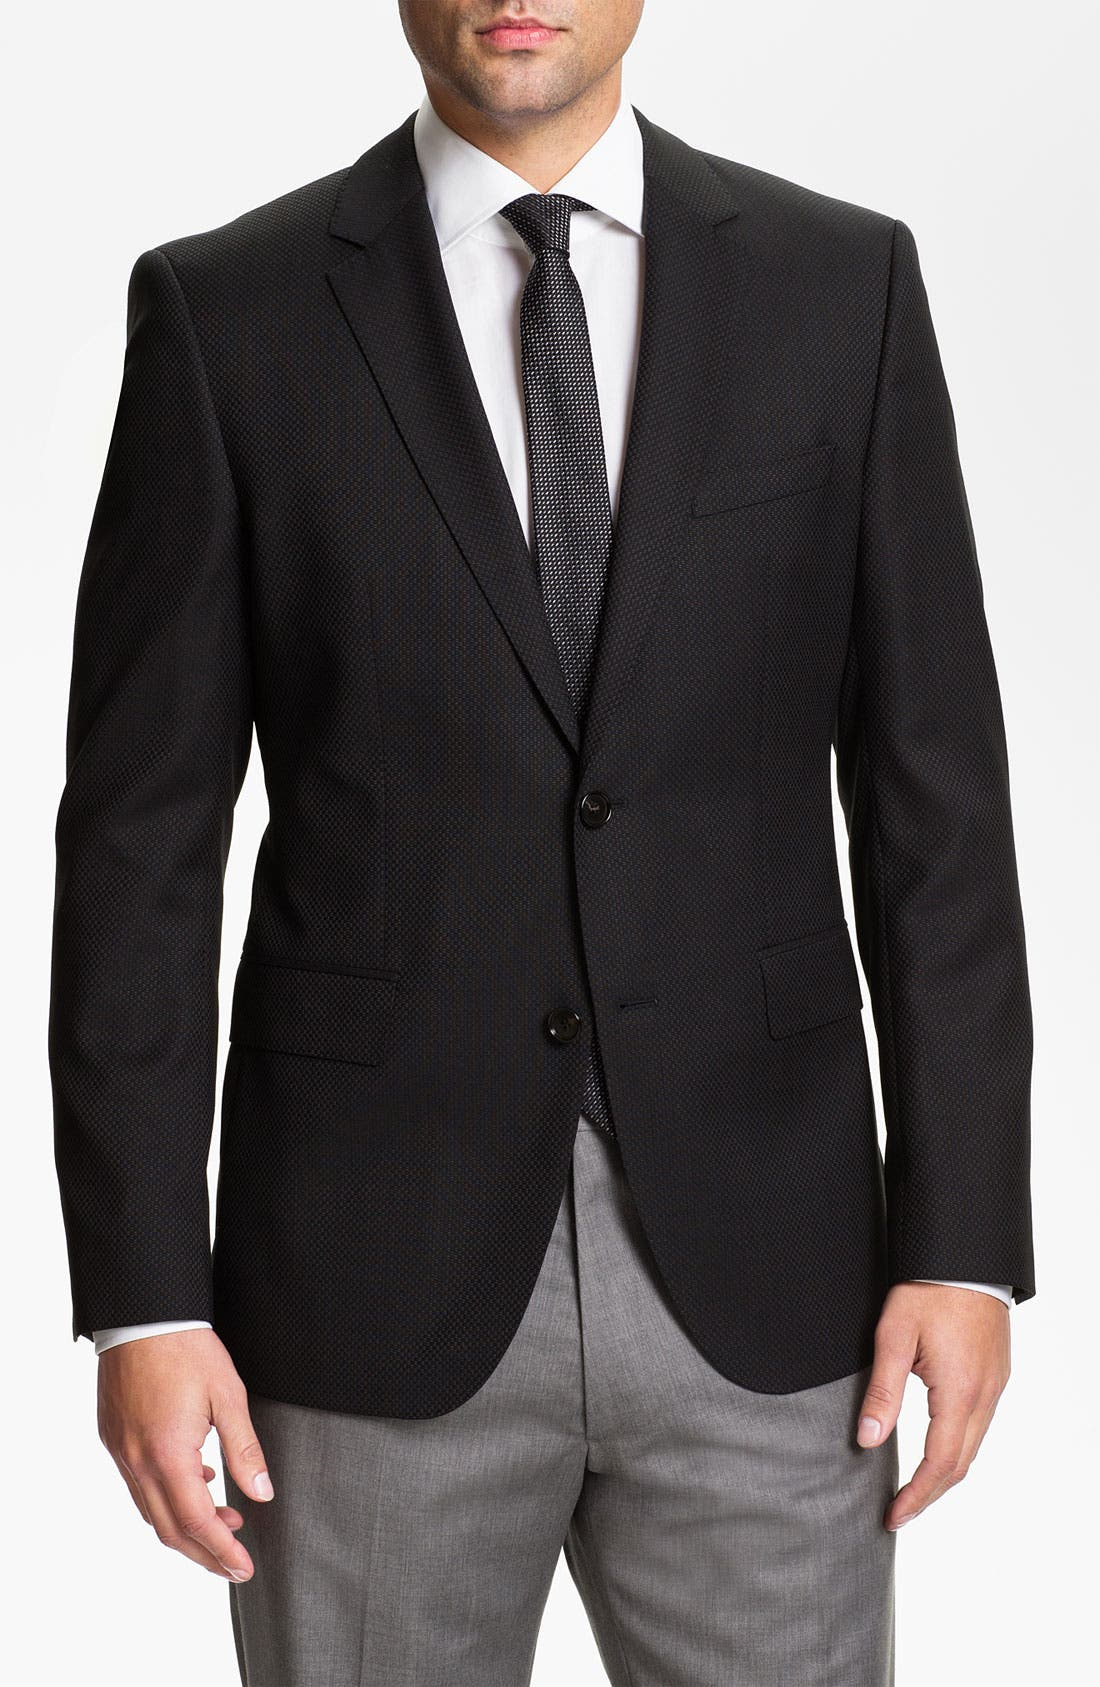 Alternate Image 1 Selected - BOSS Black 'James' Trim Fit Blazer